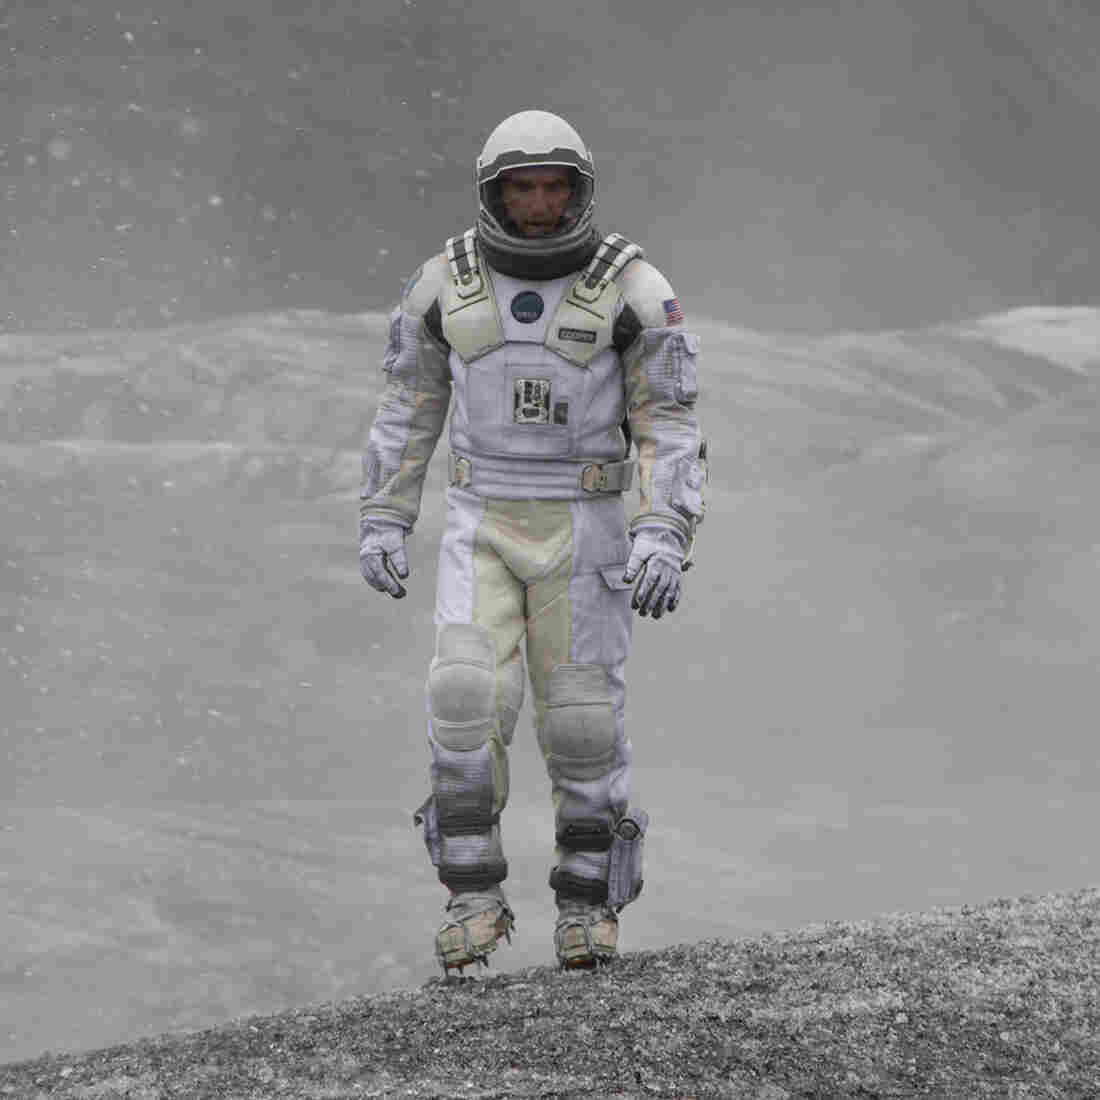 Neil DeGrasse Tyson Separates Fact From Fiction In 'Interstellar'